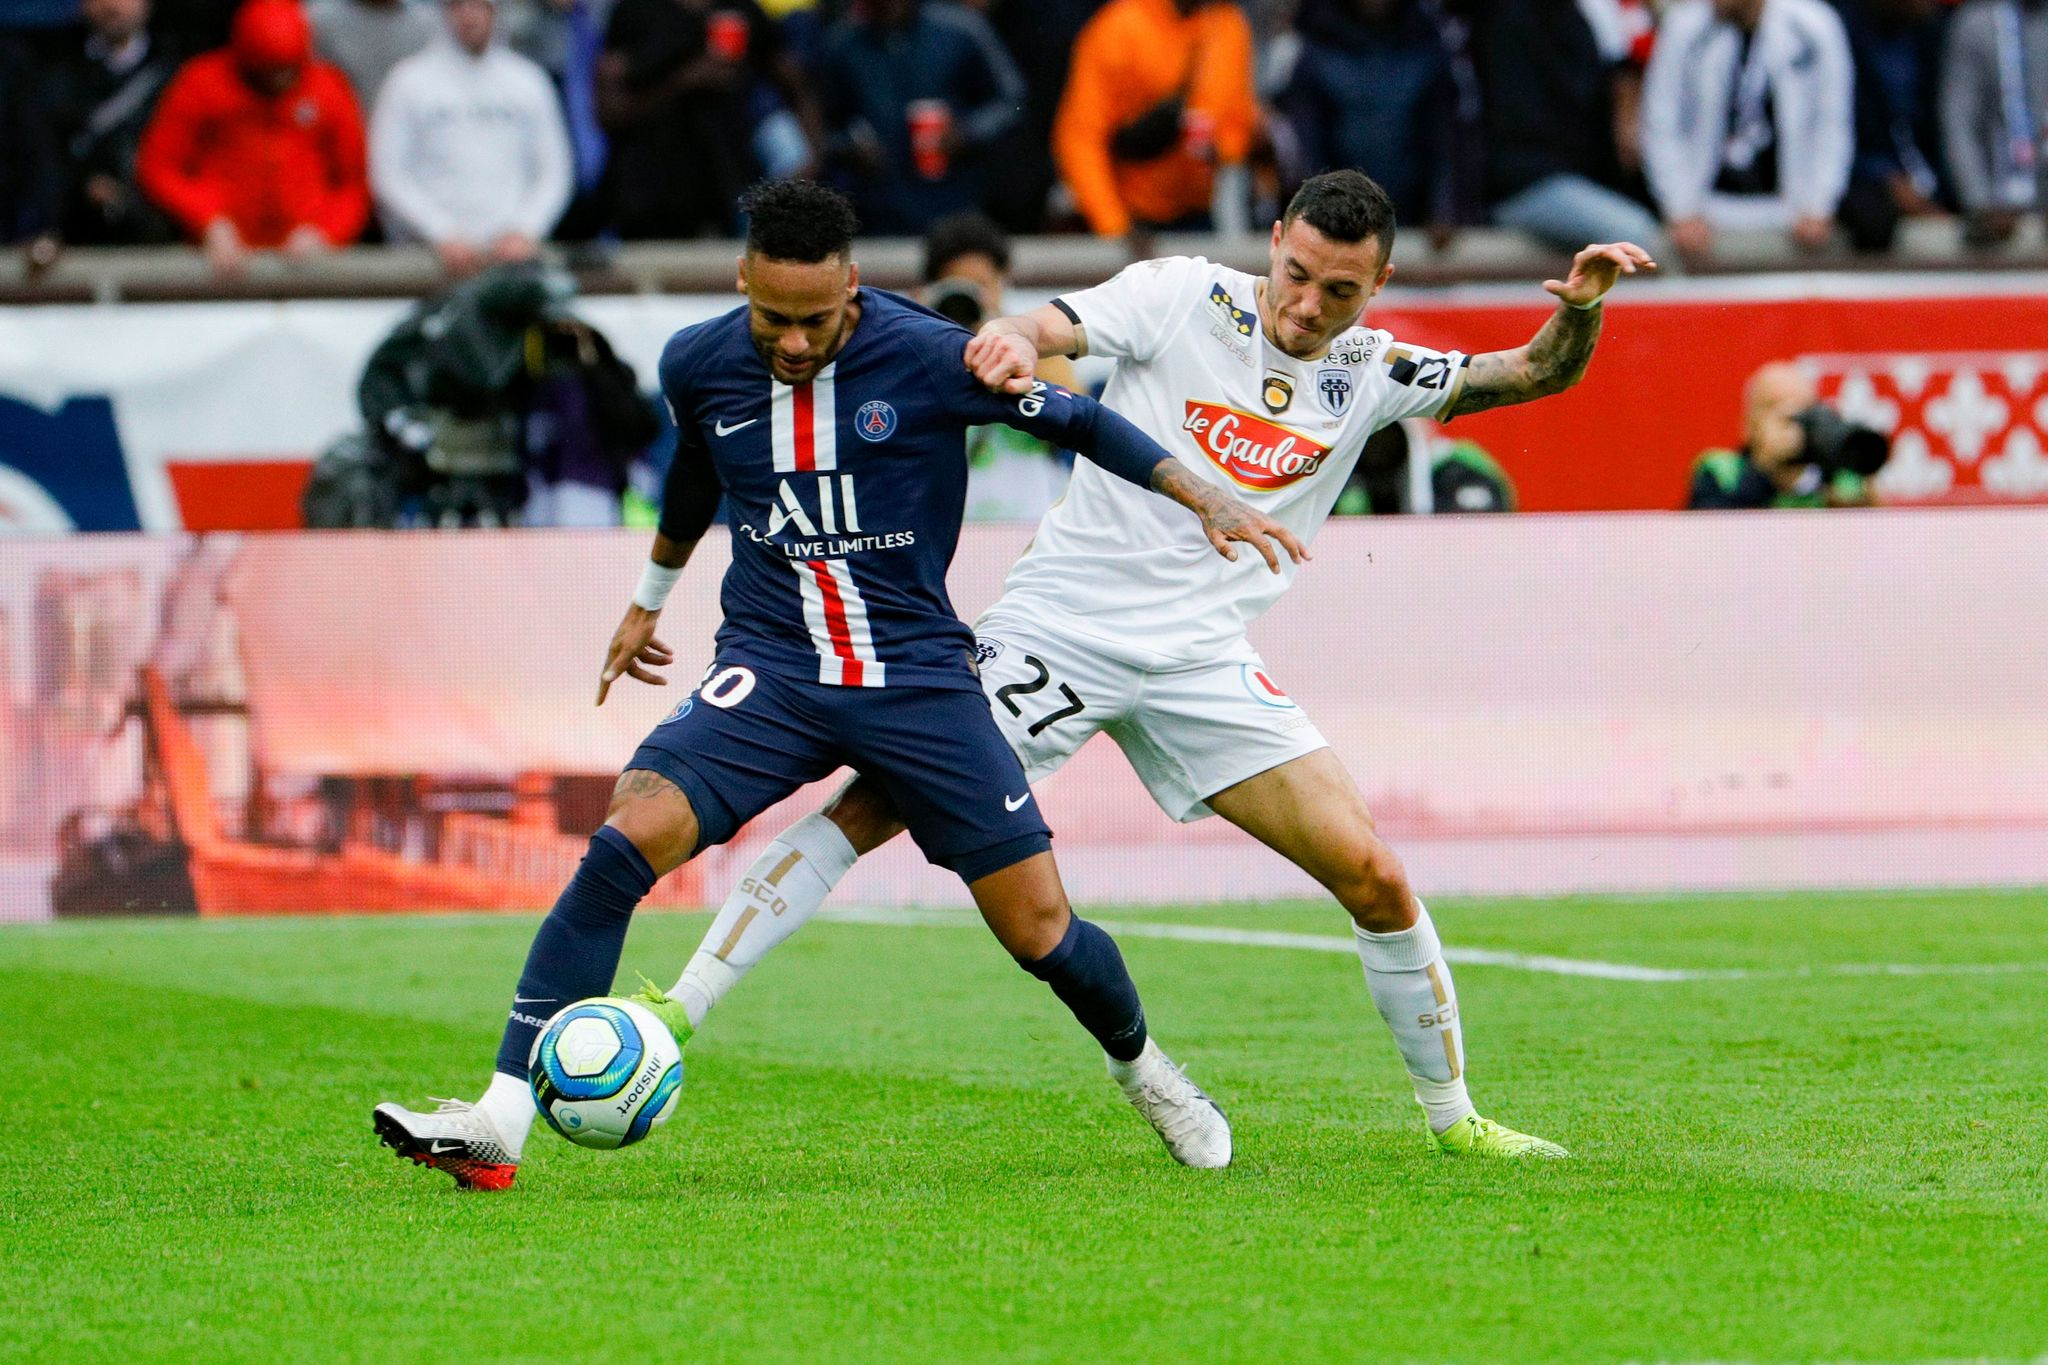 Paris Saint-Germains Brazilian forward <HIT>Neymar</HIT> (L) fights for the ball with Angers Franco-Portuguese midfielder Mathias Pereira Lage during the French L1 football match between Paris Saint-Germain and Angers SCO at the Parc des Princes stadium in Paris on October 5, 2019. (Photo by GEOFFROY VAN DER HASSELT / AFP)